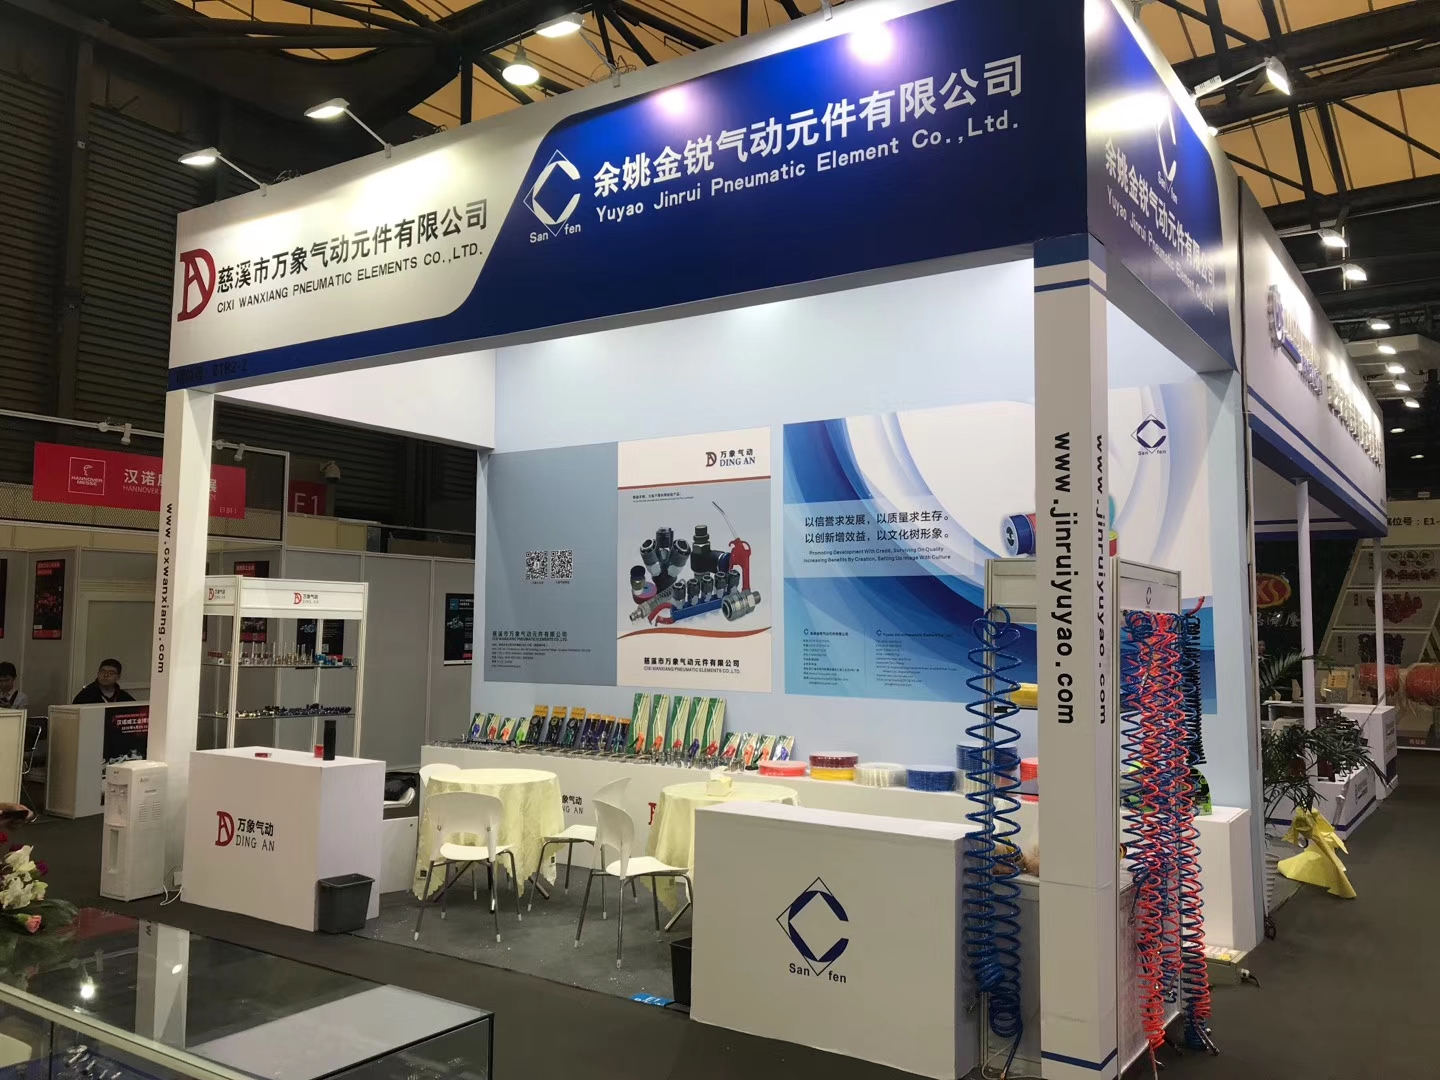 October 23-26, 2019 PTC Asia Power Transmission Exhibition in Shanghai successfully concluded